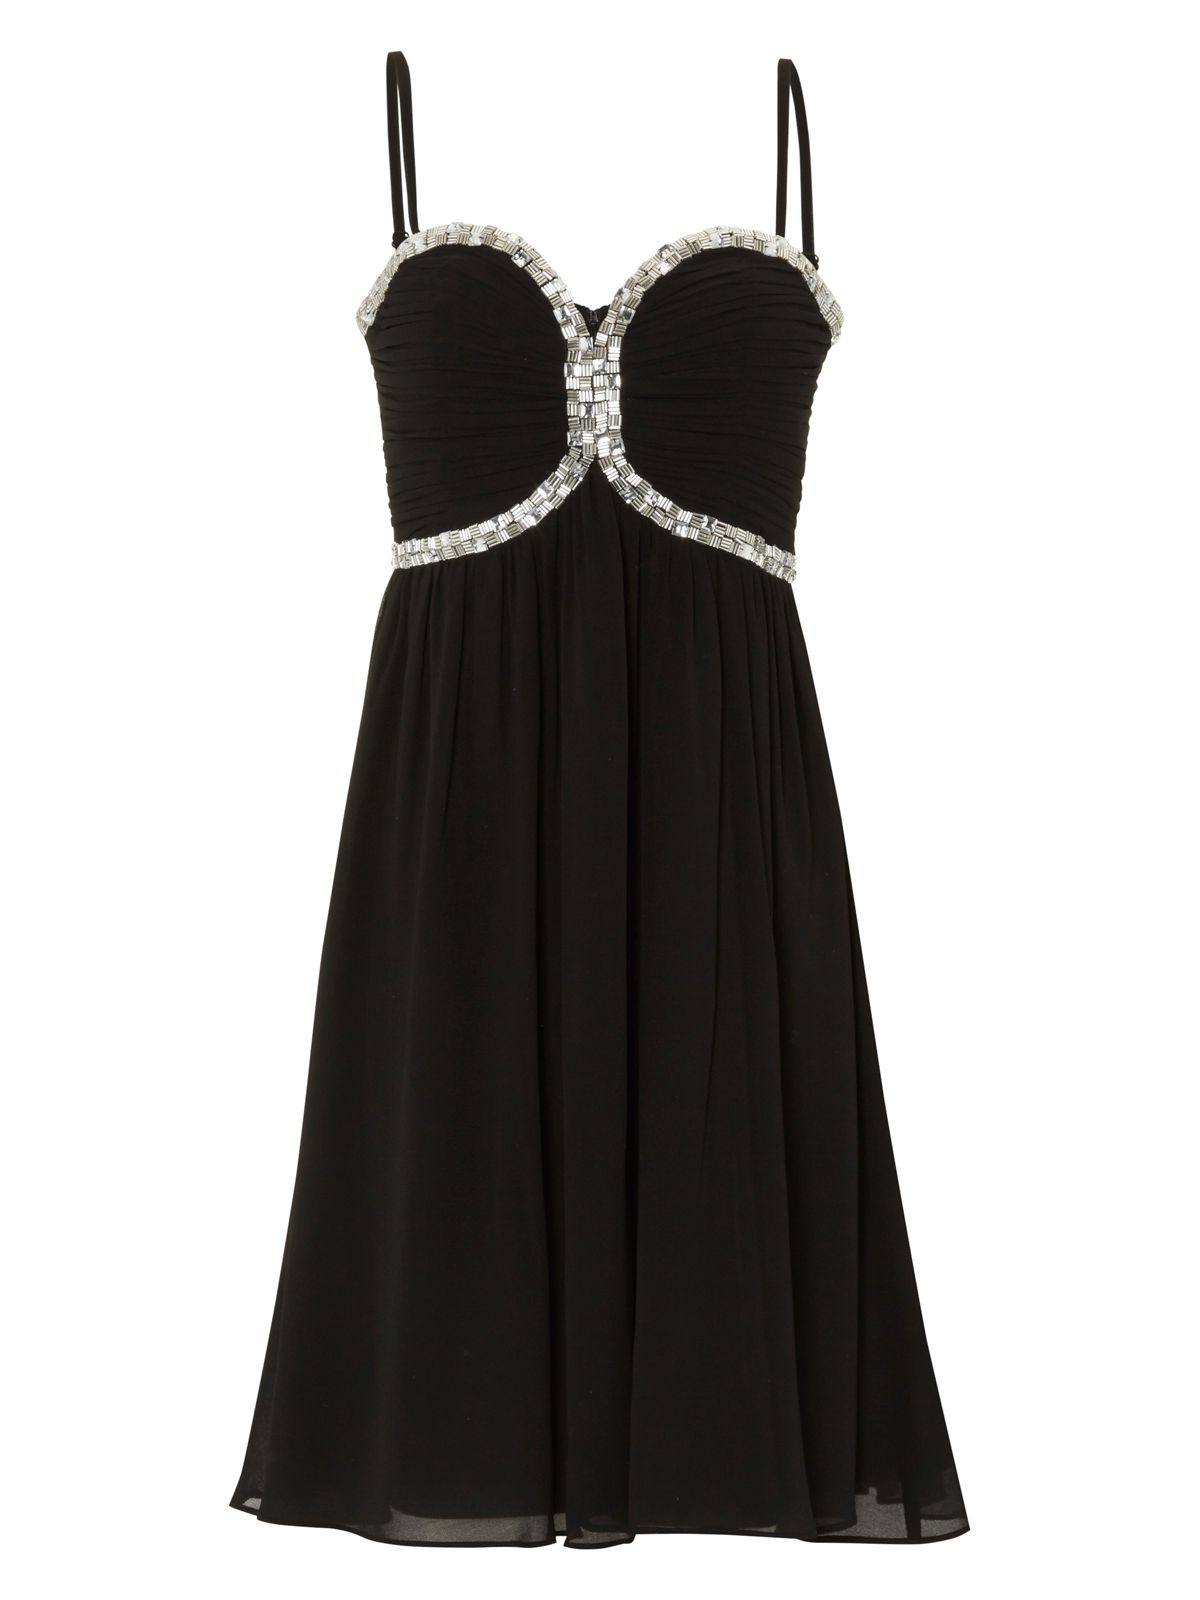 Sweetheart embellished prom dress